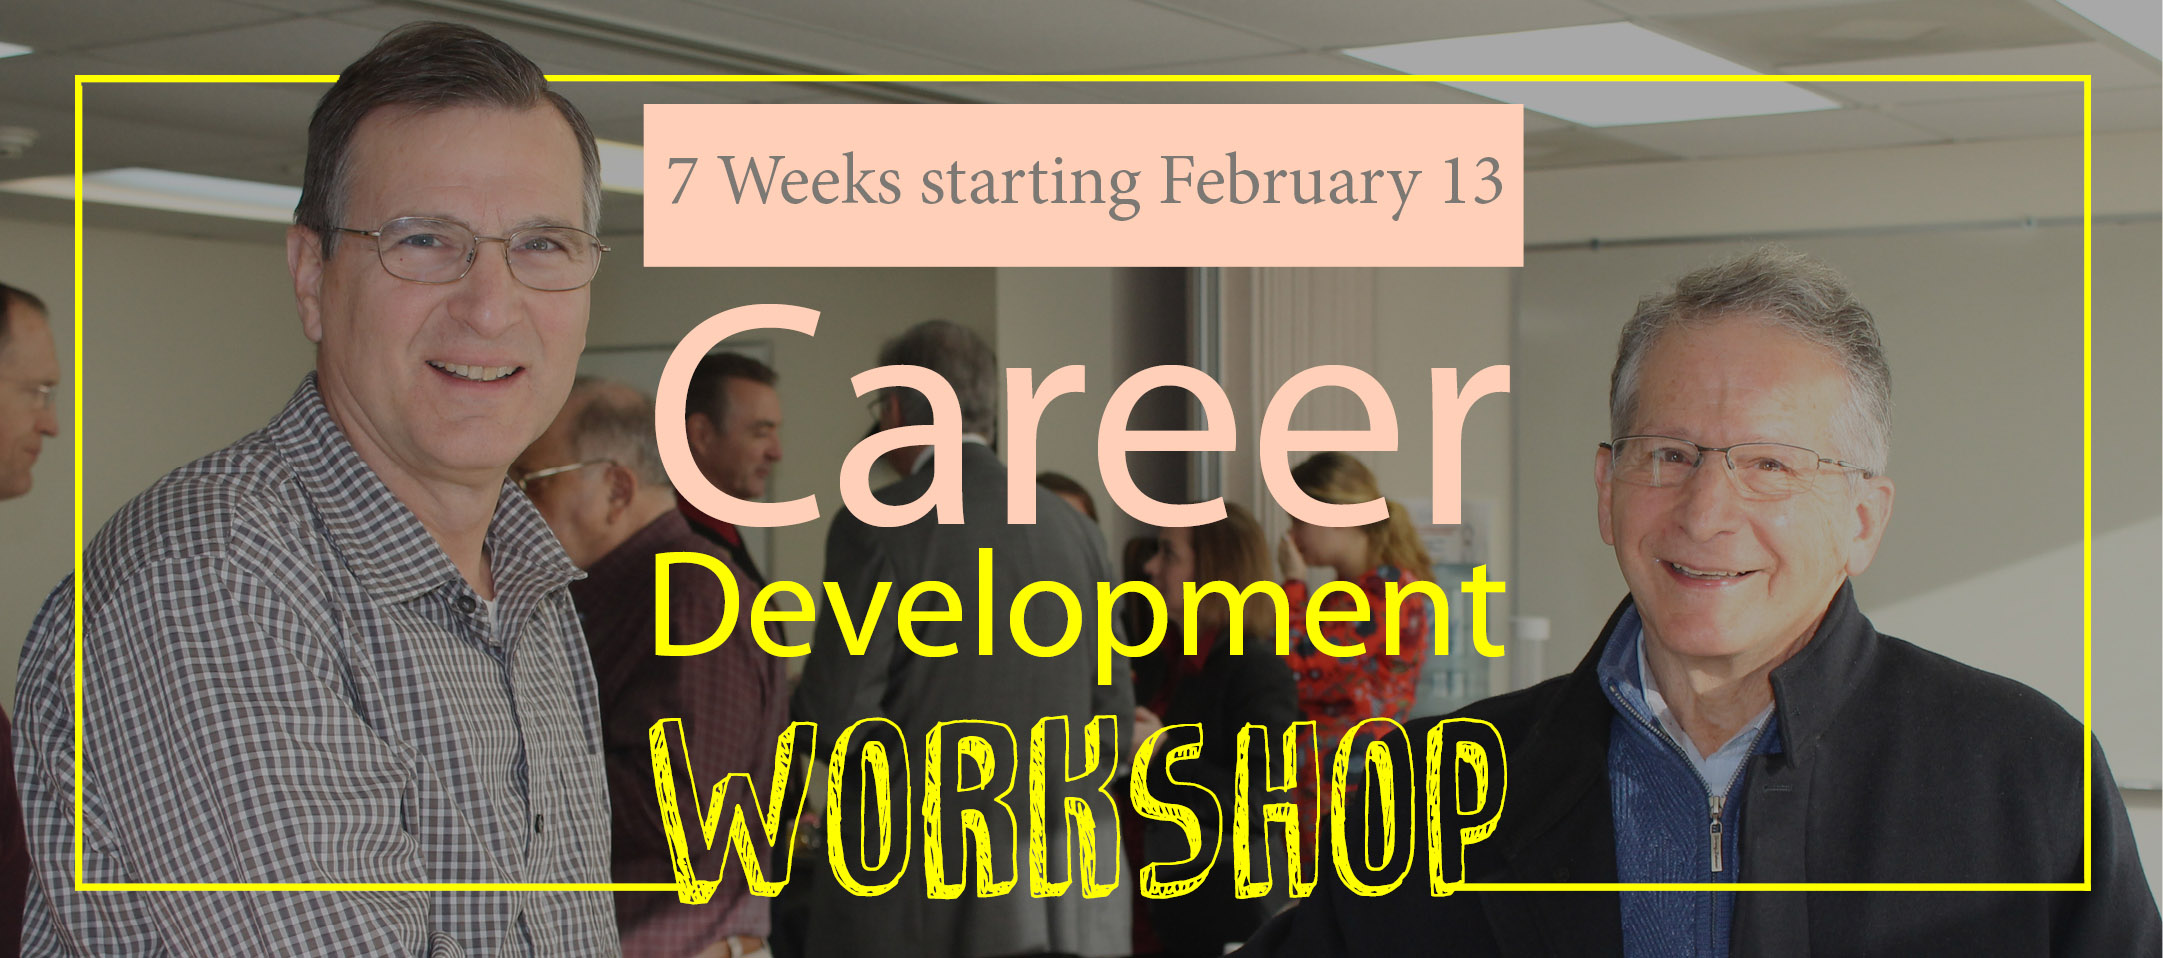 Career Development Workshop.jpg